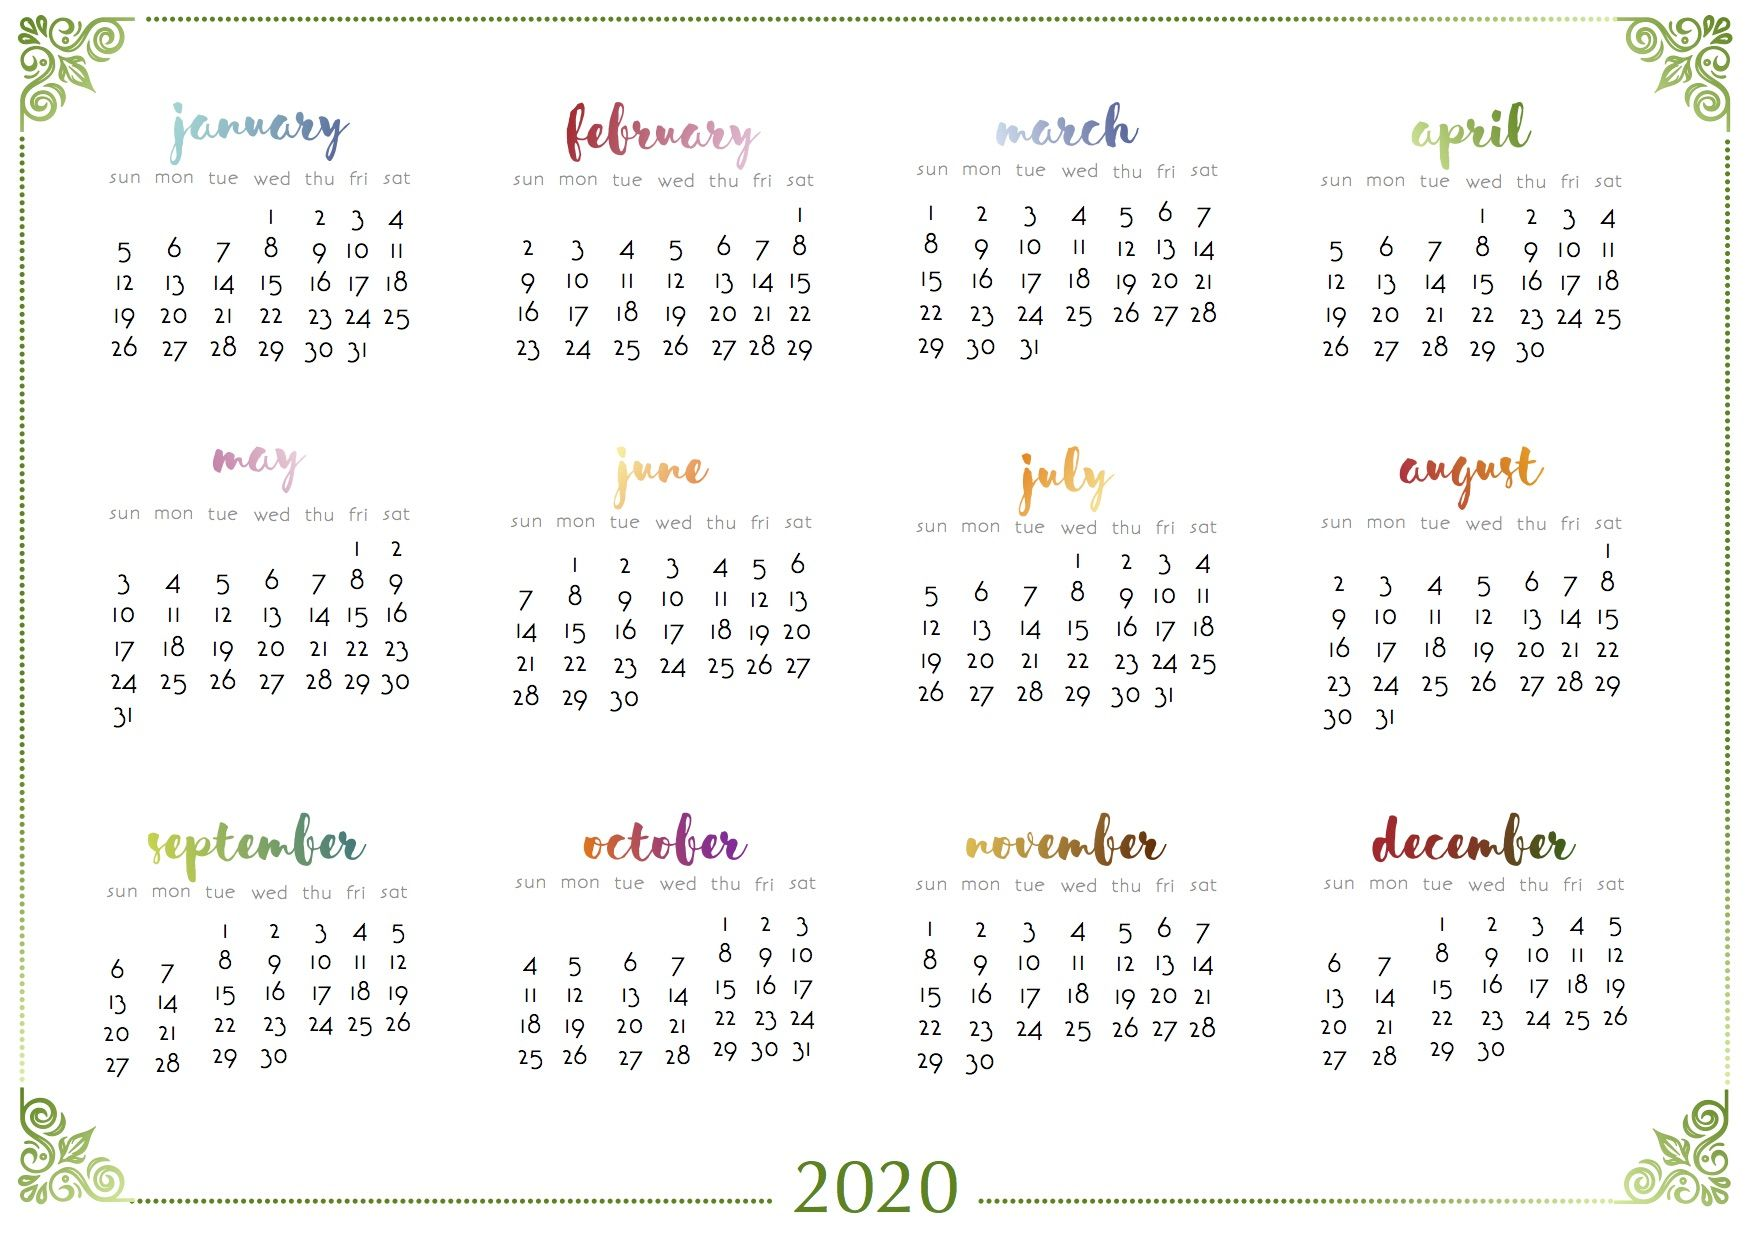 2020 And 2021 Gradient One Sheet Calendars As Requested 2020 Calendars Calendar Project Life Cards